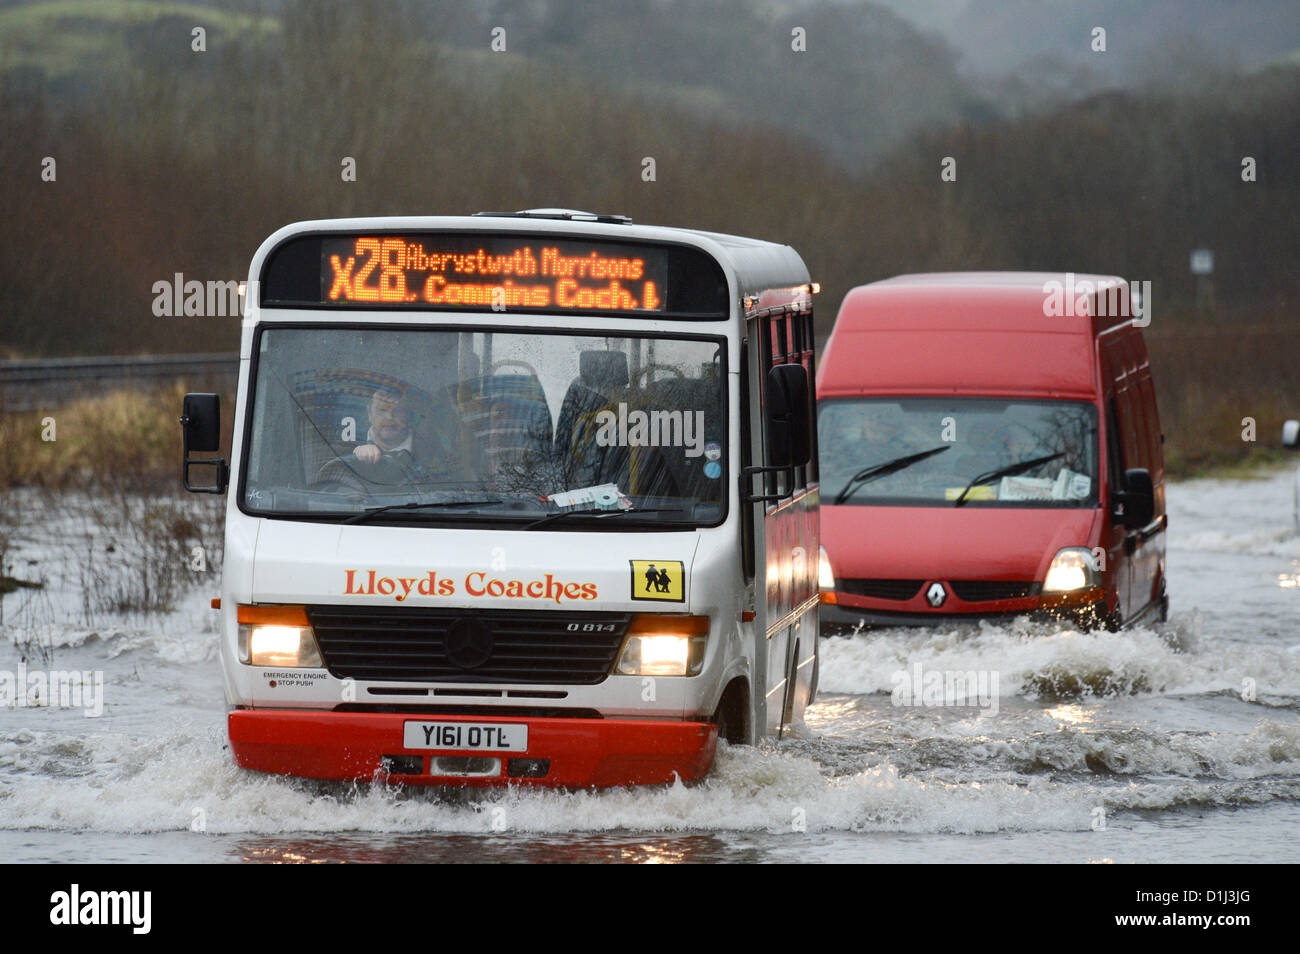 Derwenlas, Ceredigion Wales UK. Monday 24 December 2012. Cars driving through floodwaters on the A487 trunk road - Stock Image